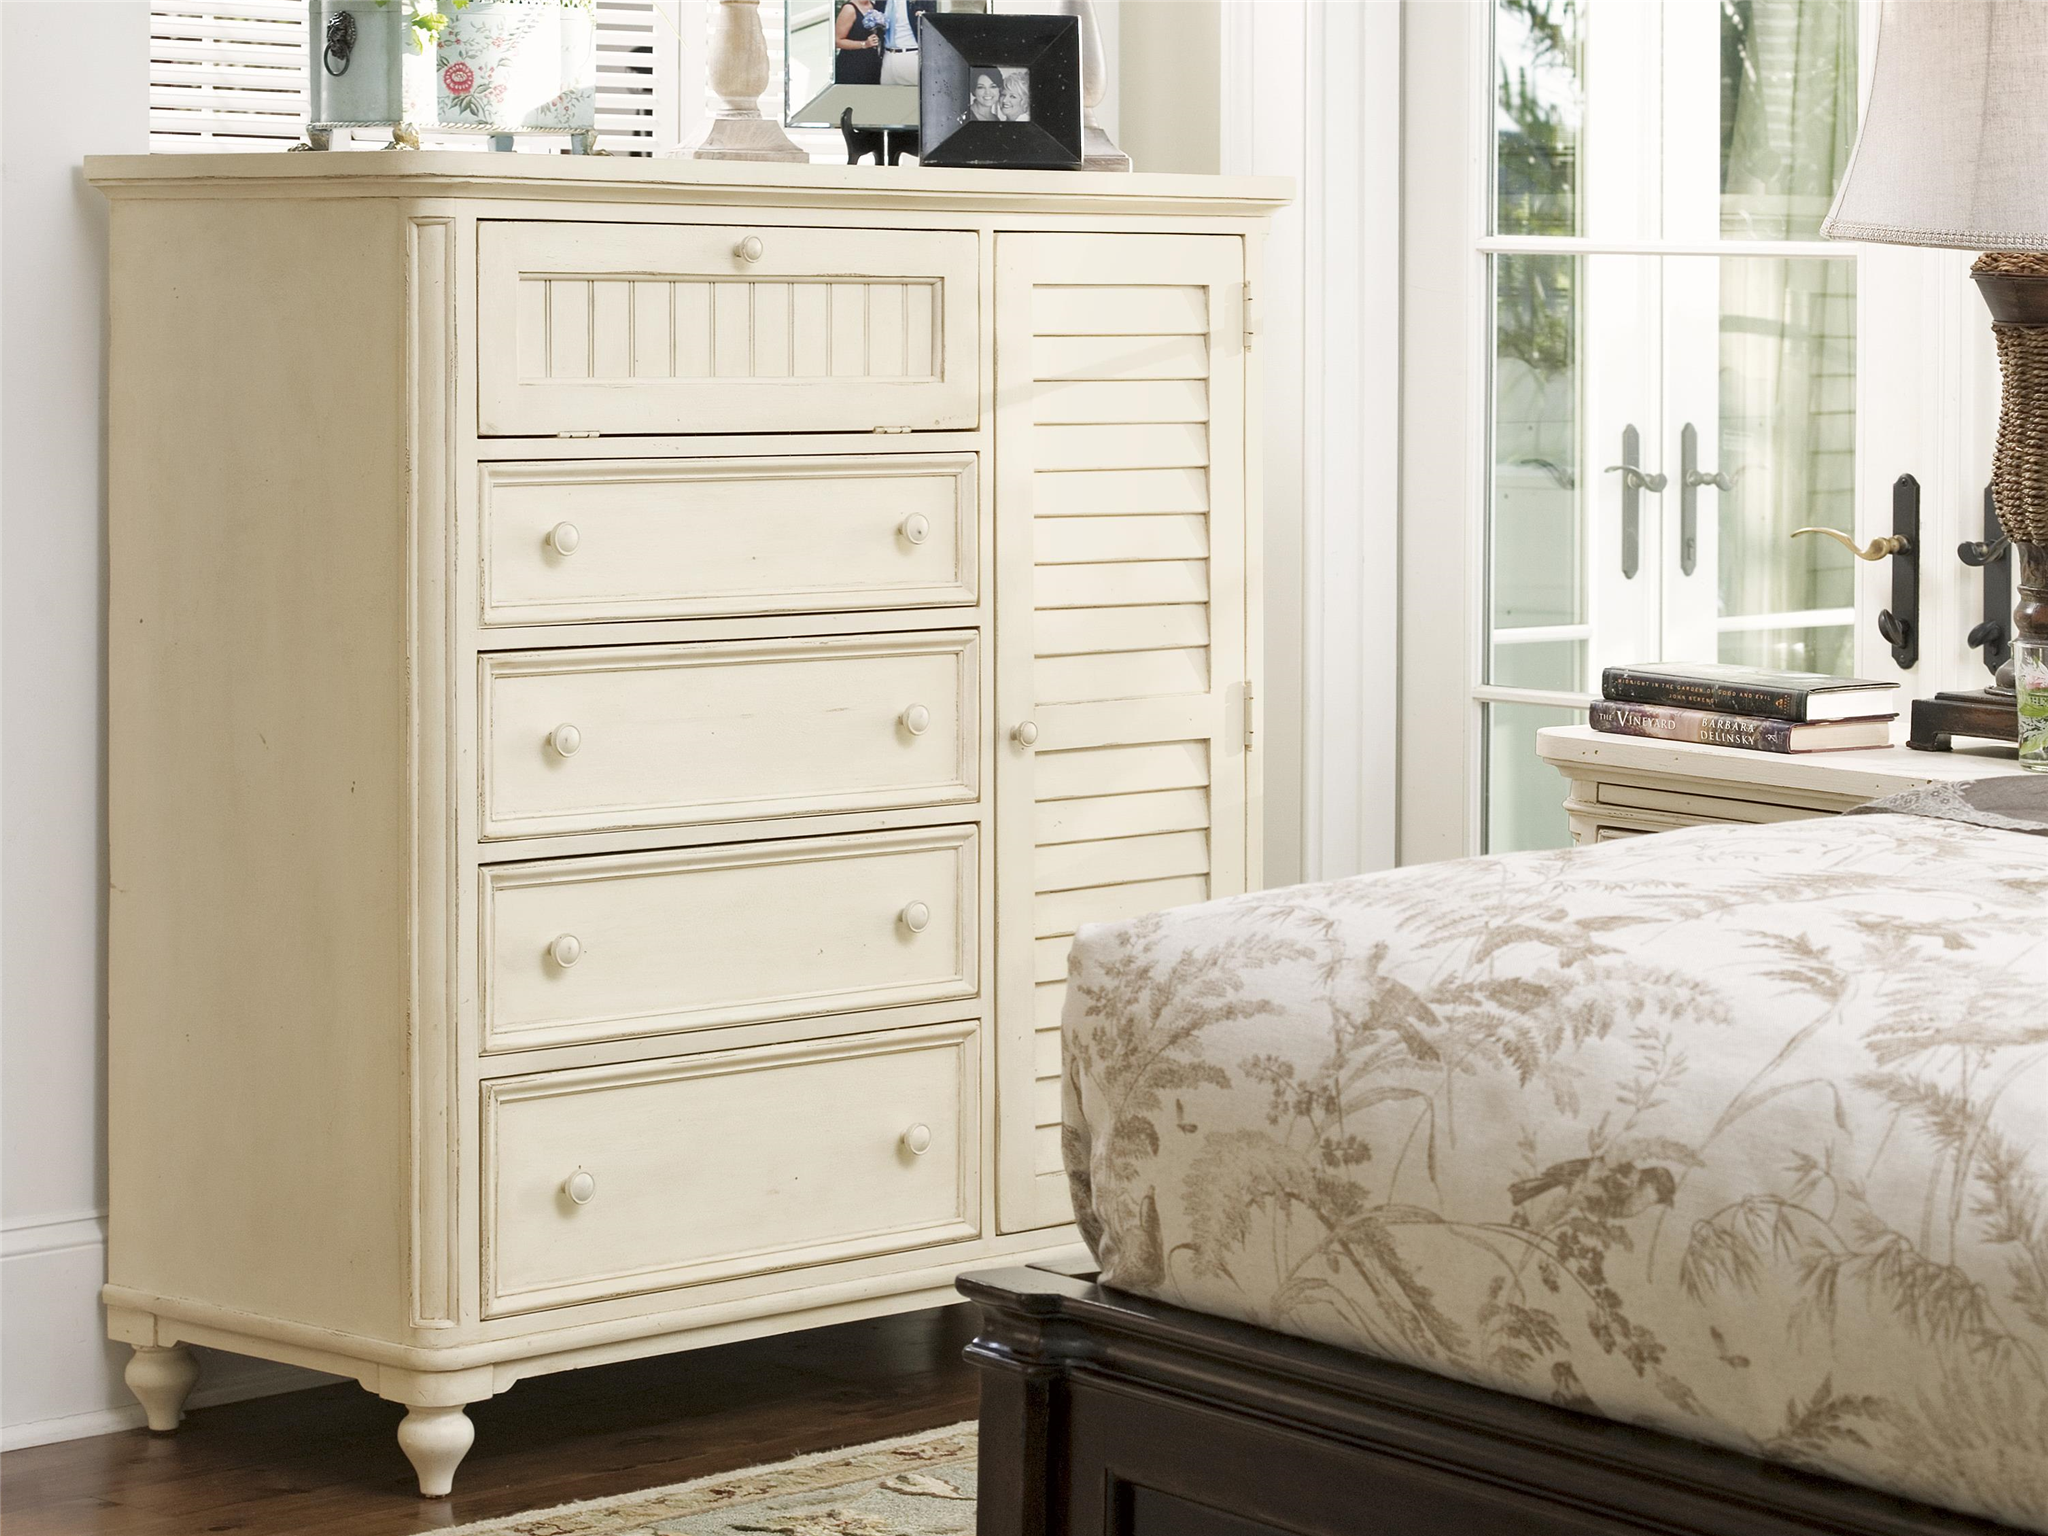 Paula deen steel magnolia dresser bestdressers 2017 - Steel magnolia bedroom furniture ...